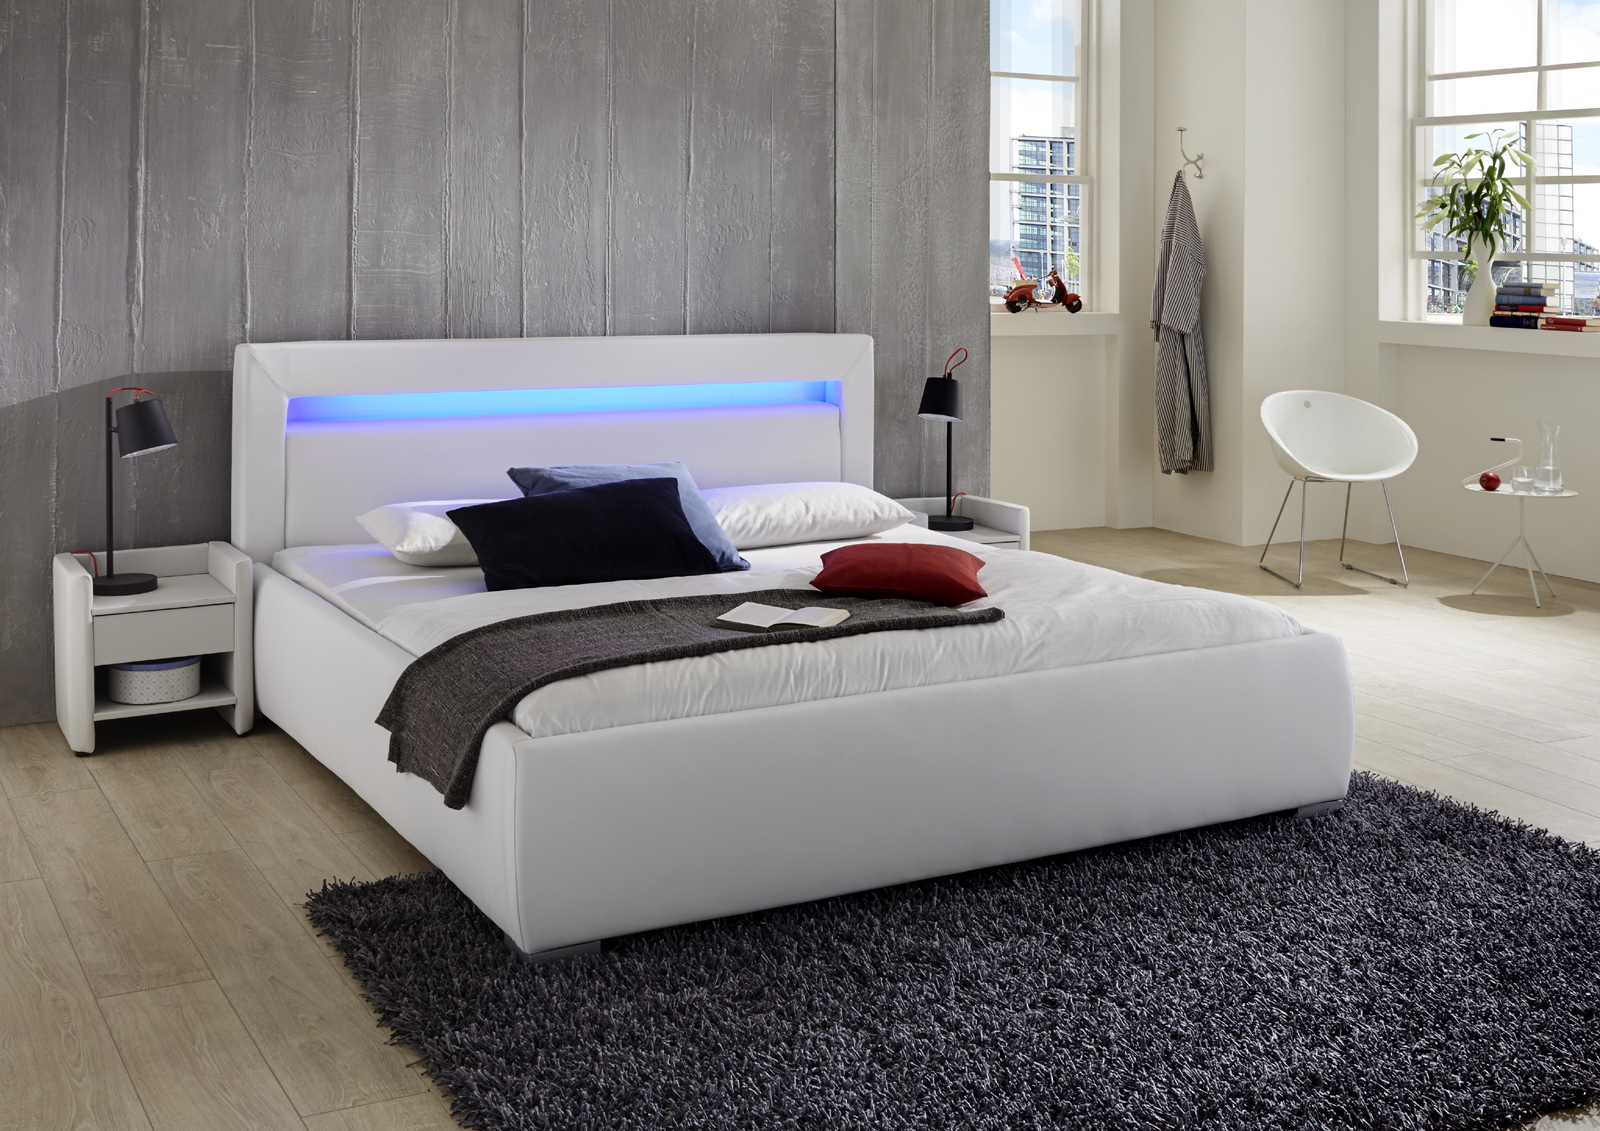 sam polsterbett 180 x 200 cm wei lumina led auf lager. Black Bedroom Furniture Sets. Home Design Ideas